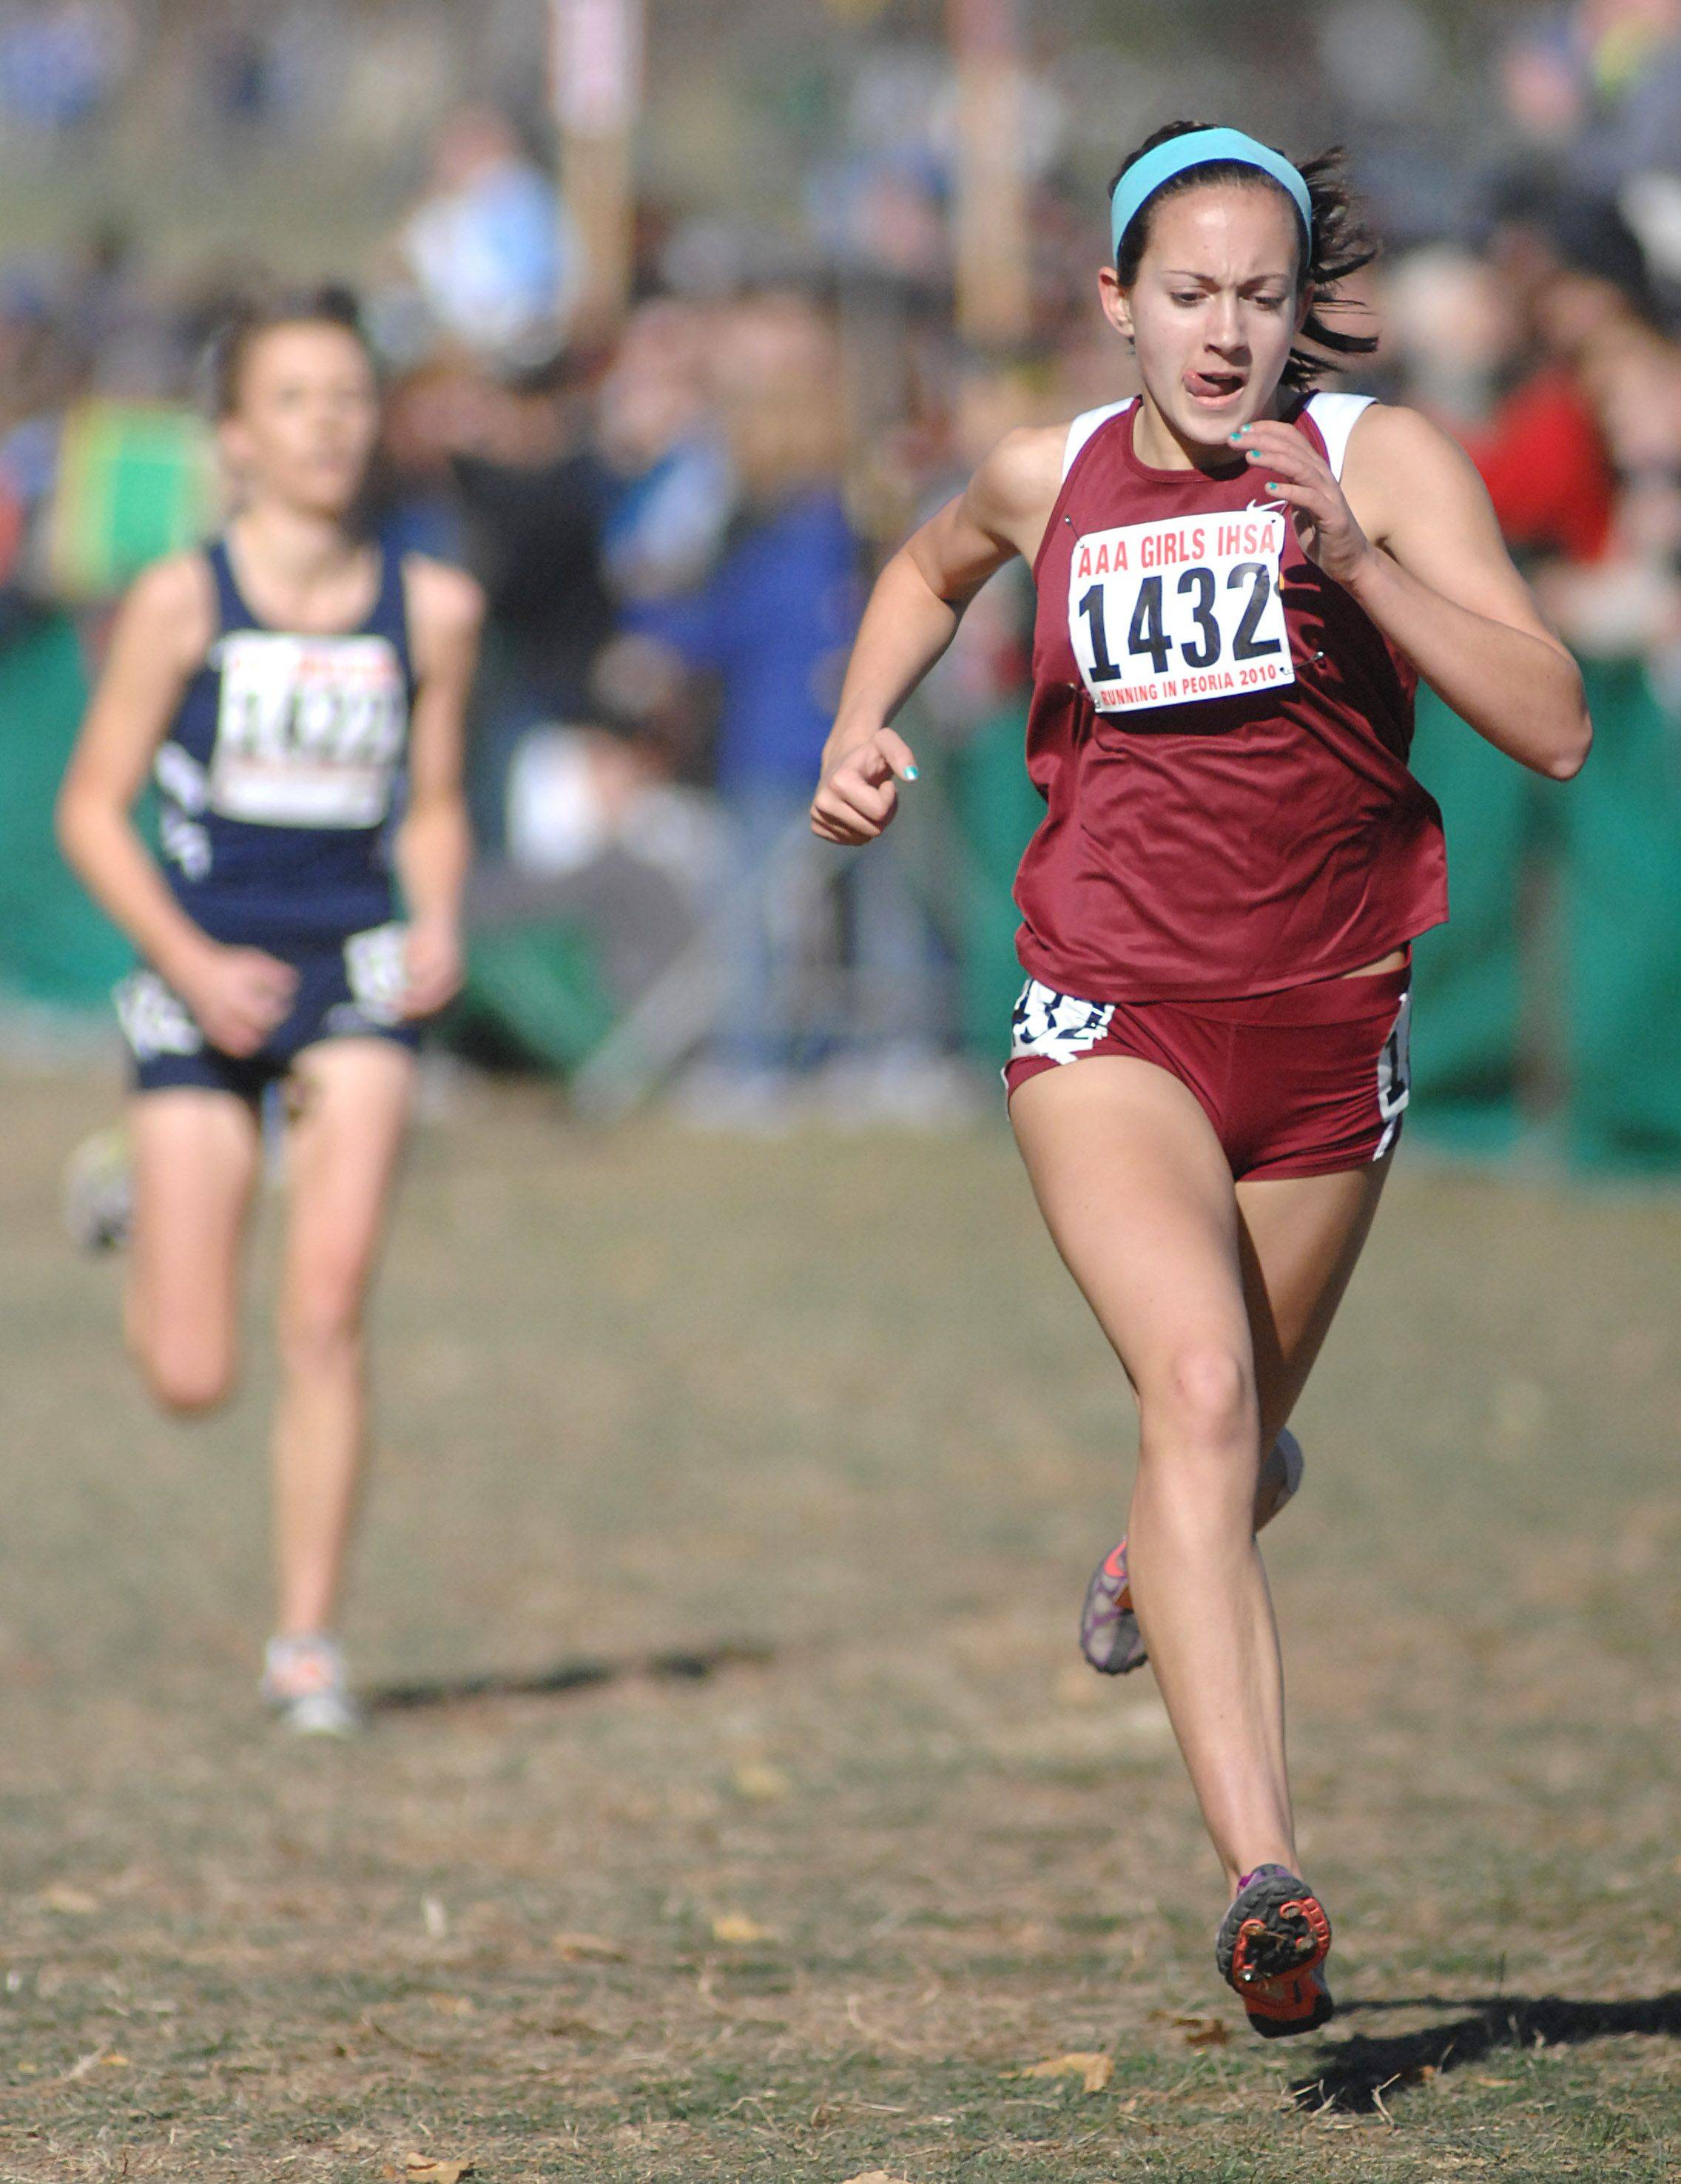 Schaumburg High School's Colette Falsey takes eighth place in the 3A class of the cross country state meet at Detweiller Park in Peoria on Saturday, November 6.